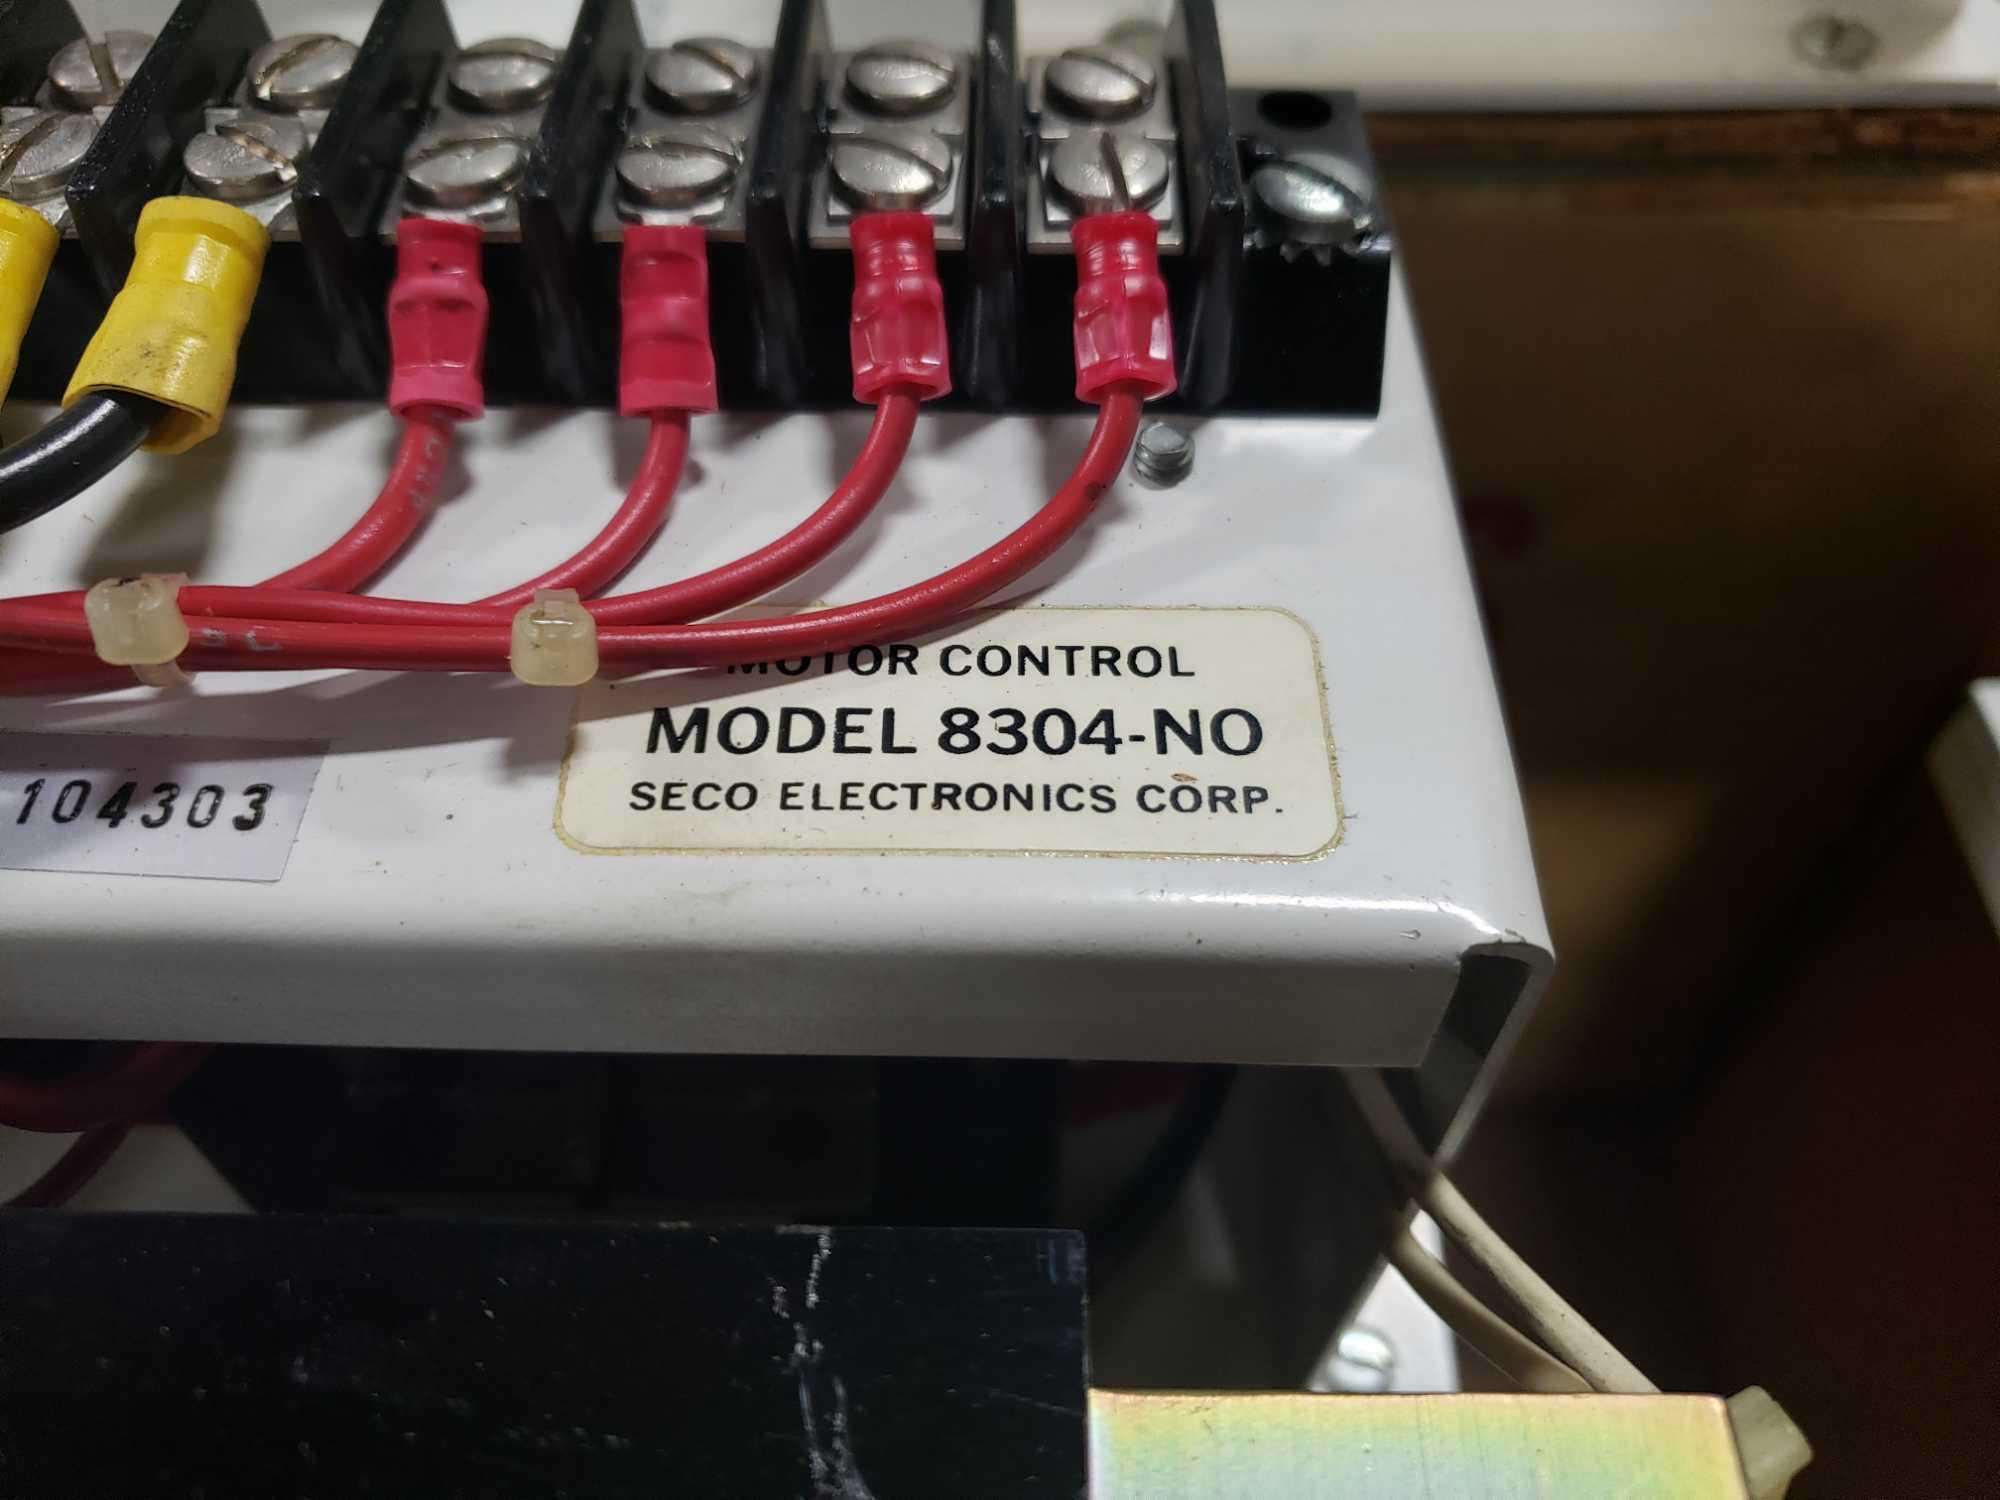 Seco Electronics model 8300 SCR motor control part 8304-N0.. New in box. - Image 2 of 4